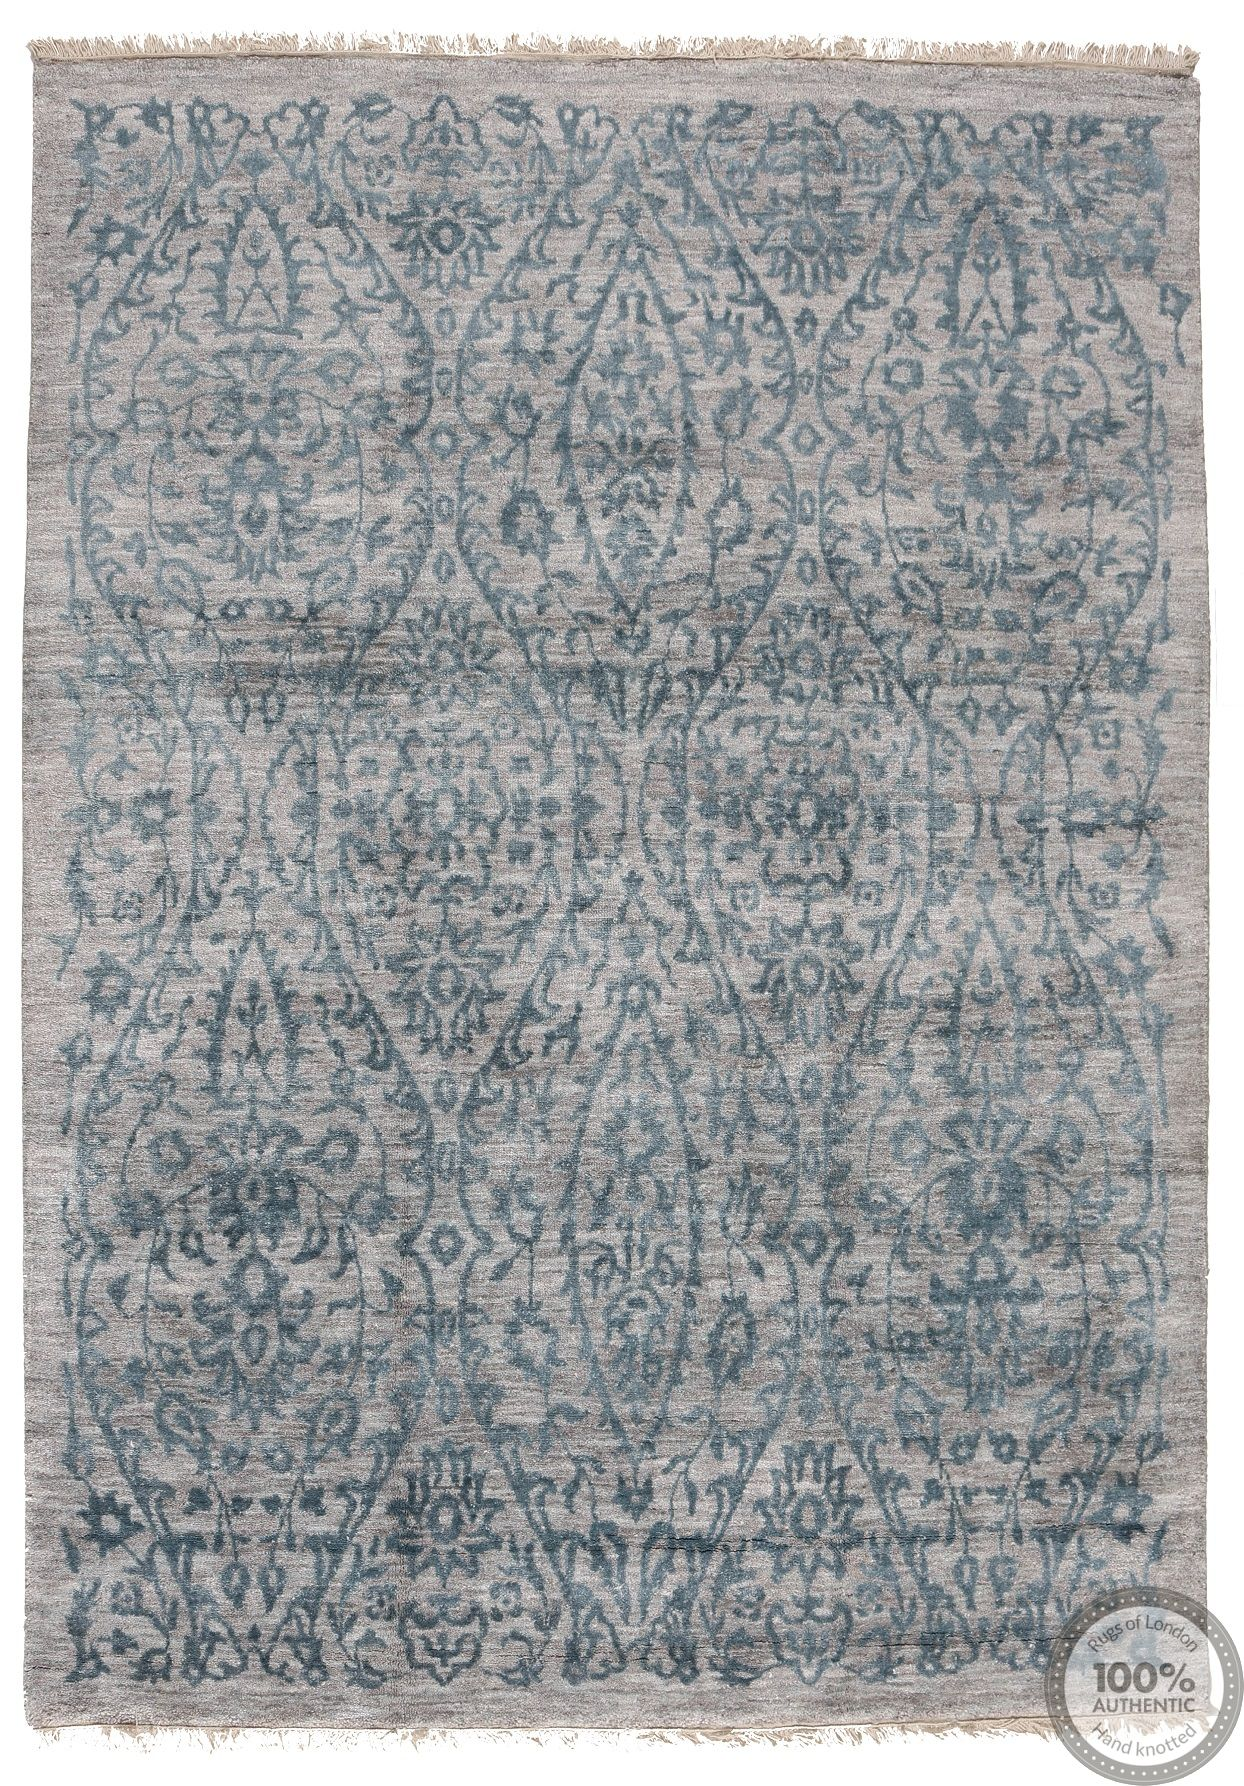 contemporary modern Indian rug - 7'8 x 5'2